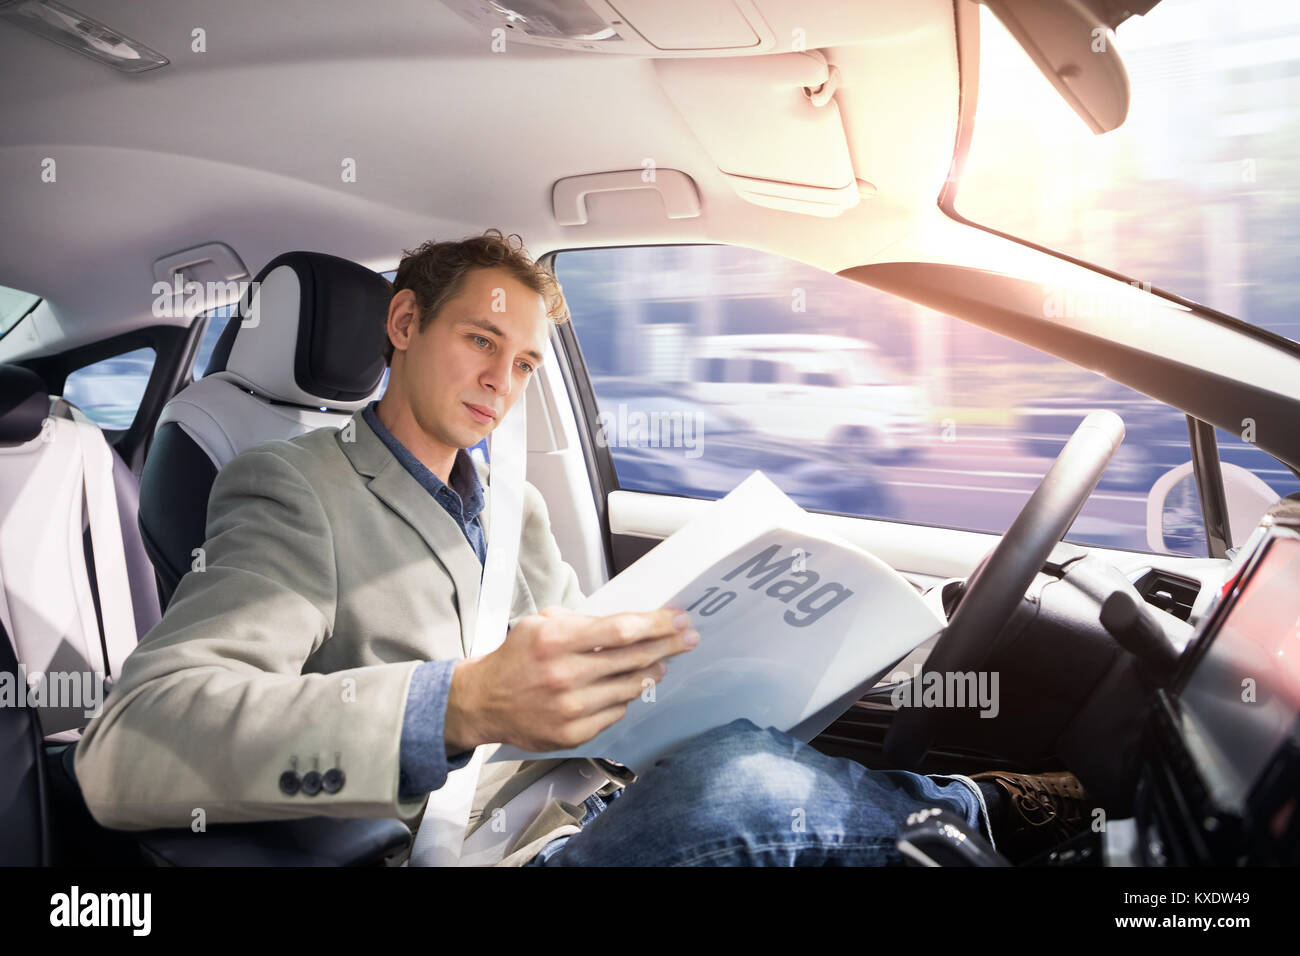 Caucasian driver reading magazine in autonomous car. Self driving vehicle. Driverless car. - Stock Image